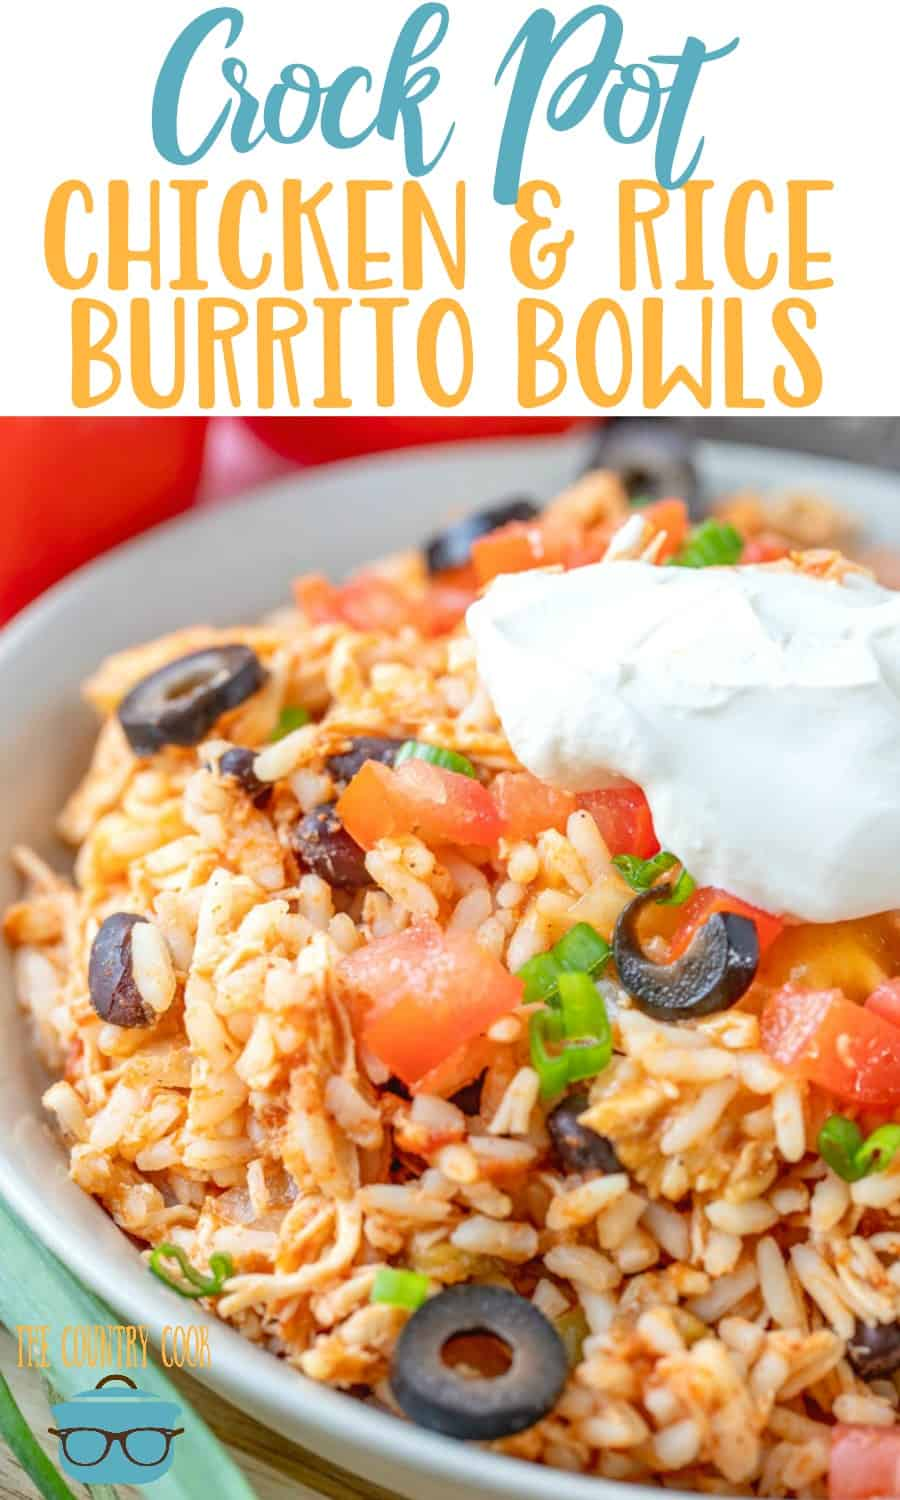 Crock Pot Chicken and Rice Burrito Bowls recipe from The Country Cook #onepot #slowcooker